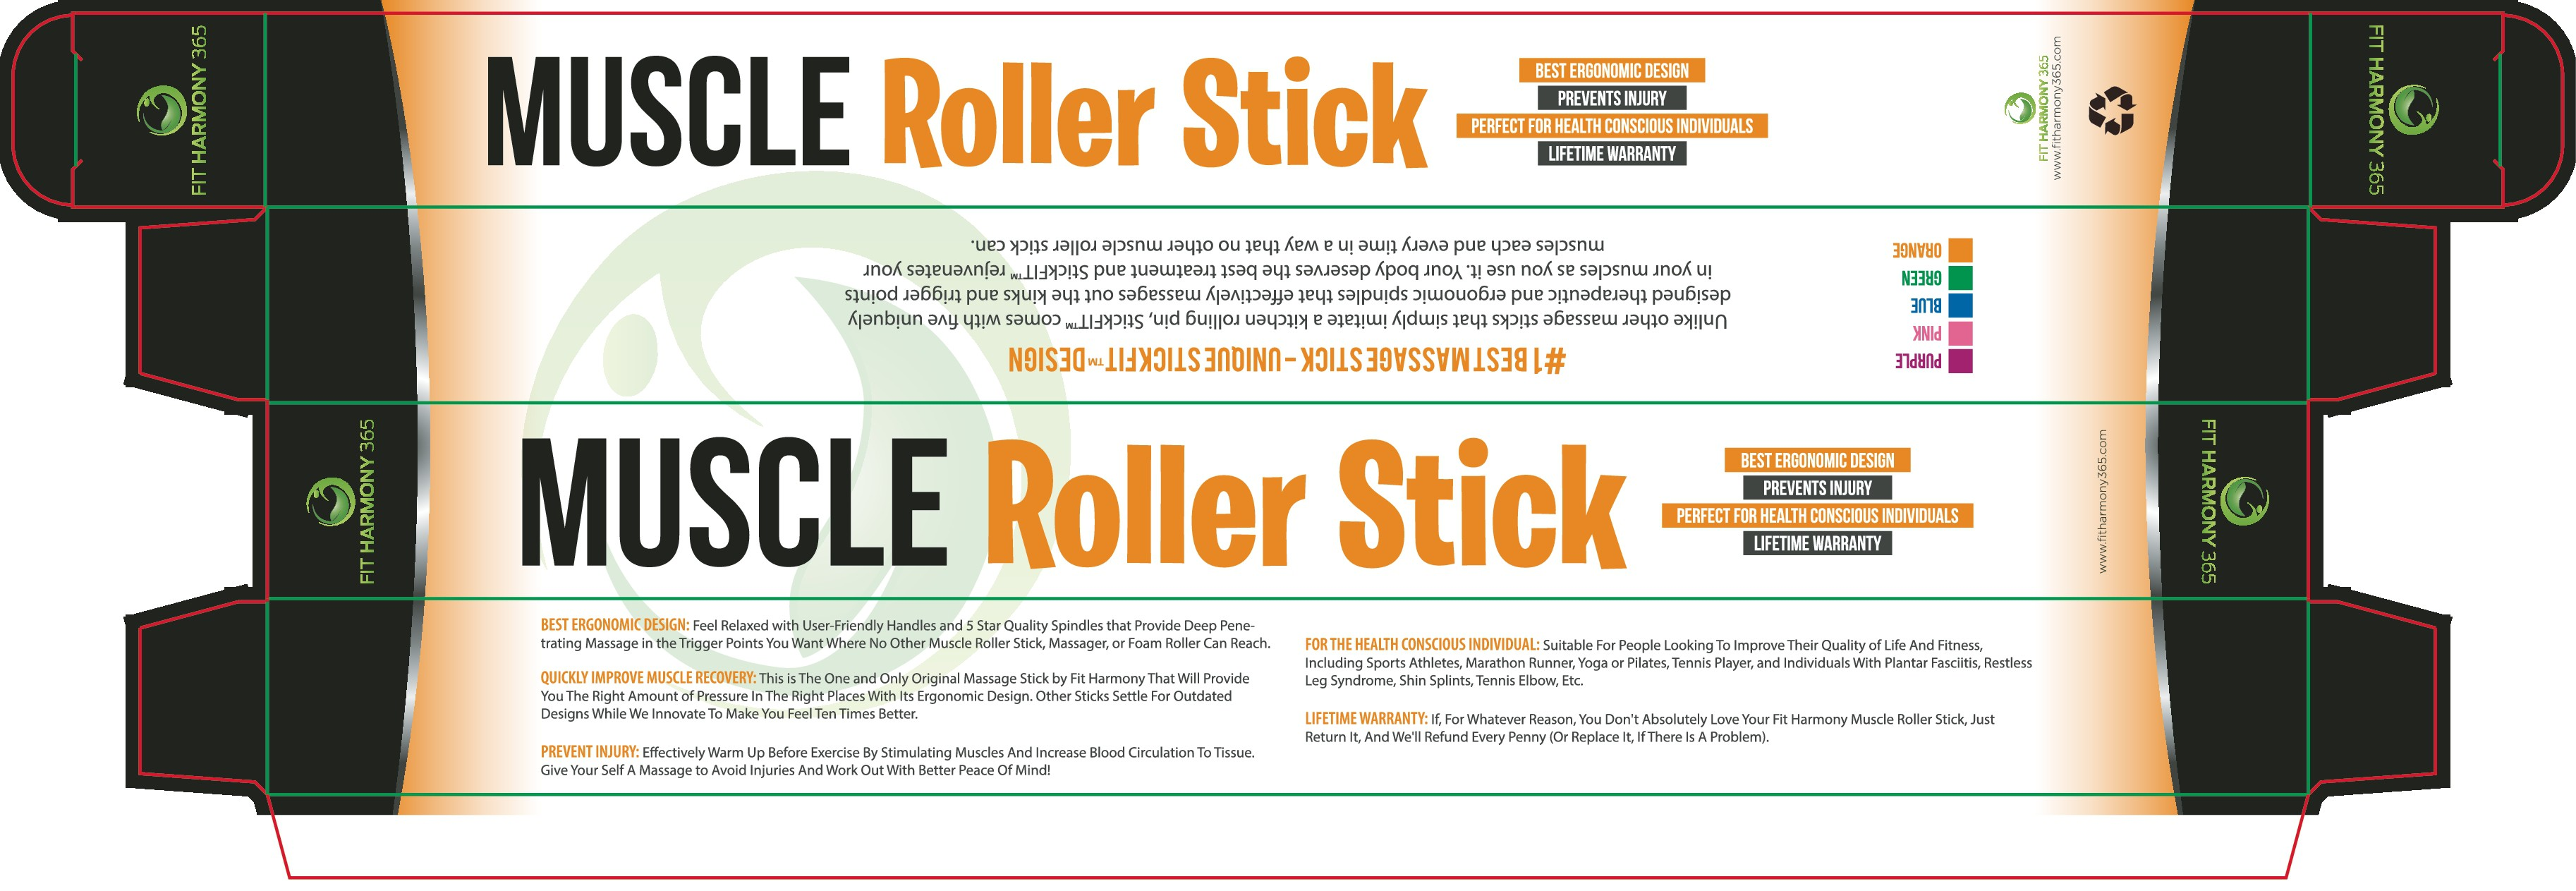 Create a box design for Muscle Roller Stick